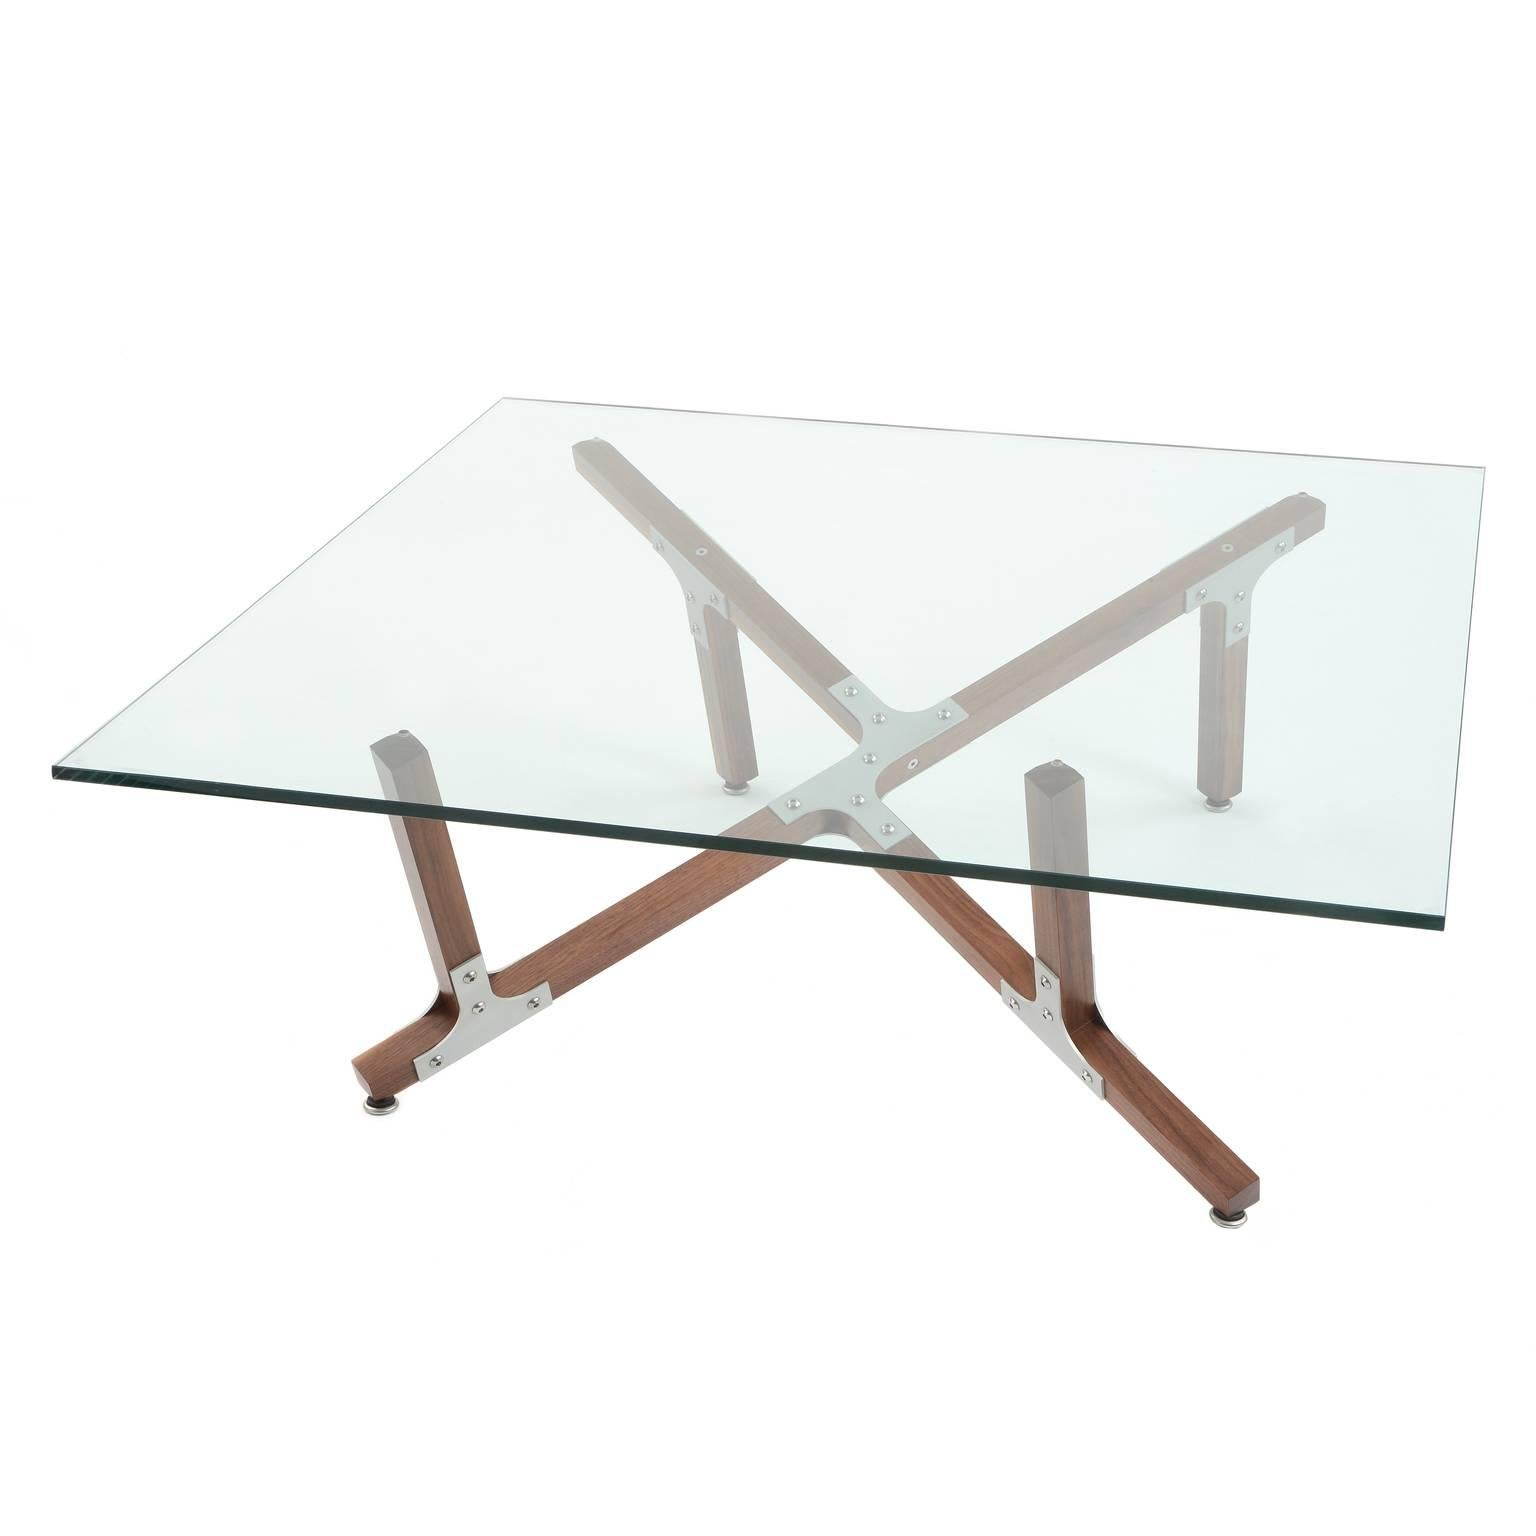 Hana Modern Industrial Coffee Table With Glass Top Metal And Walnut Wood  For Sale